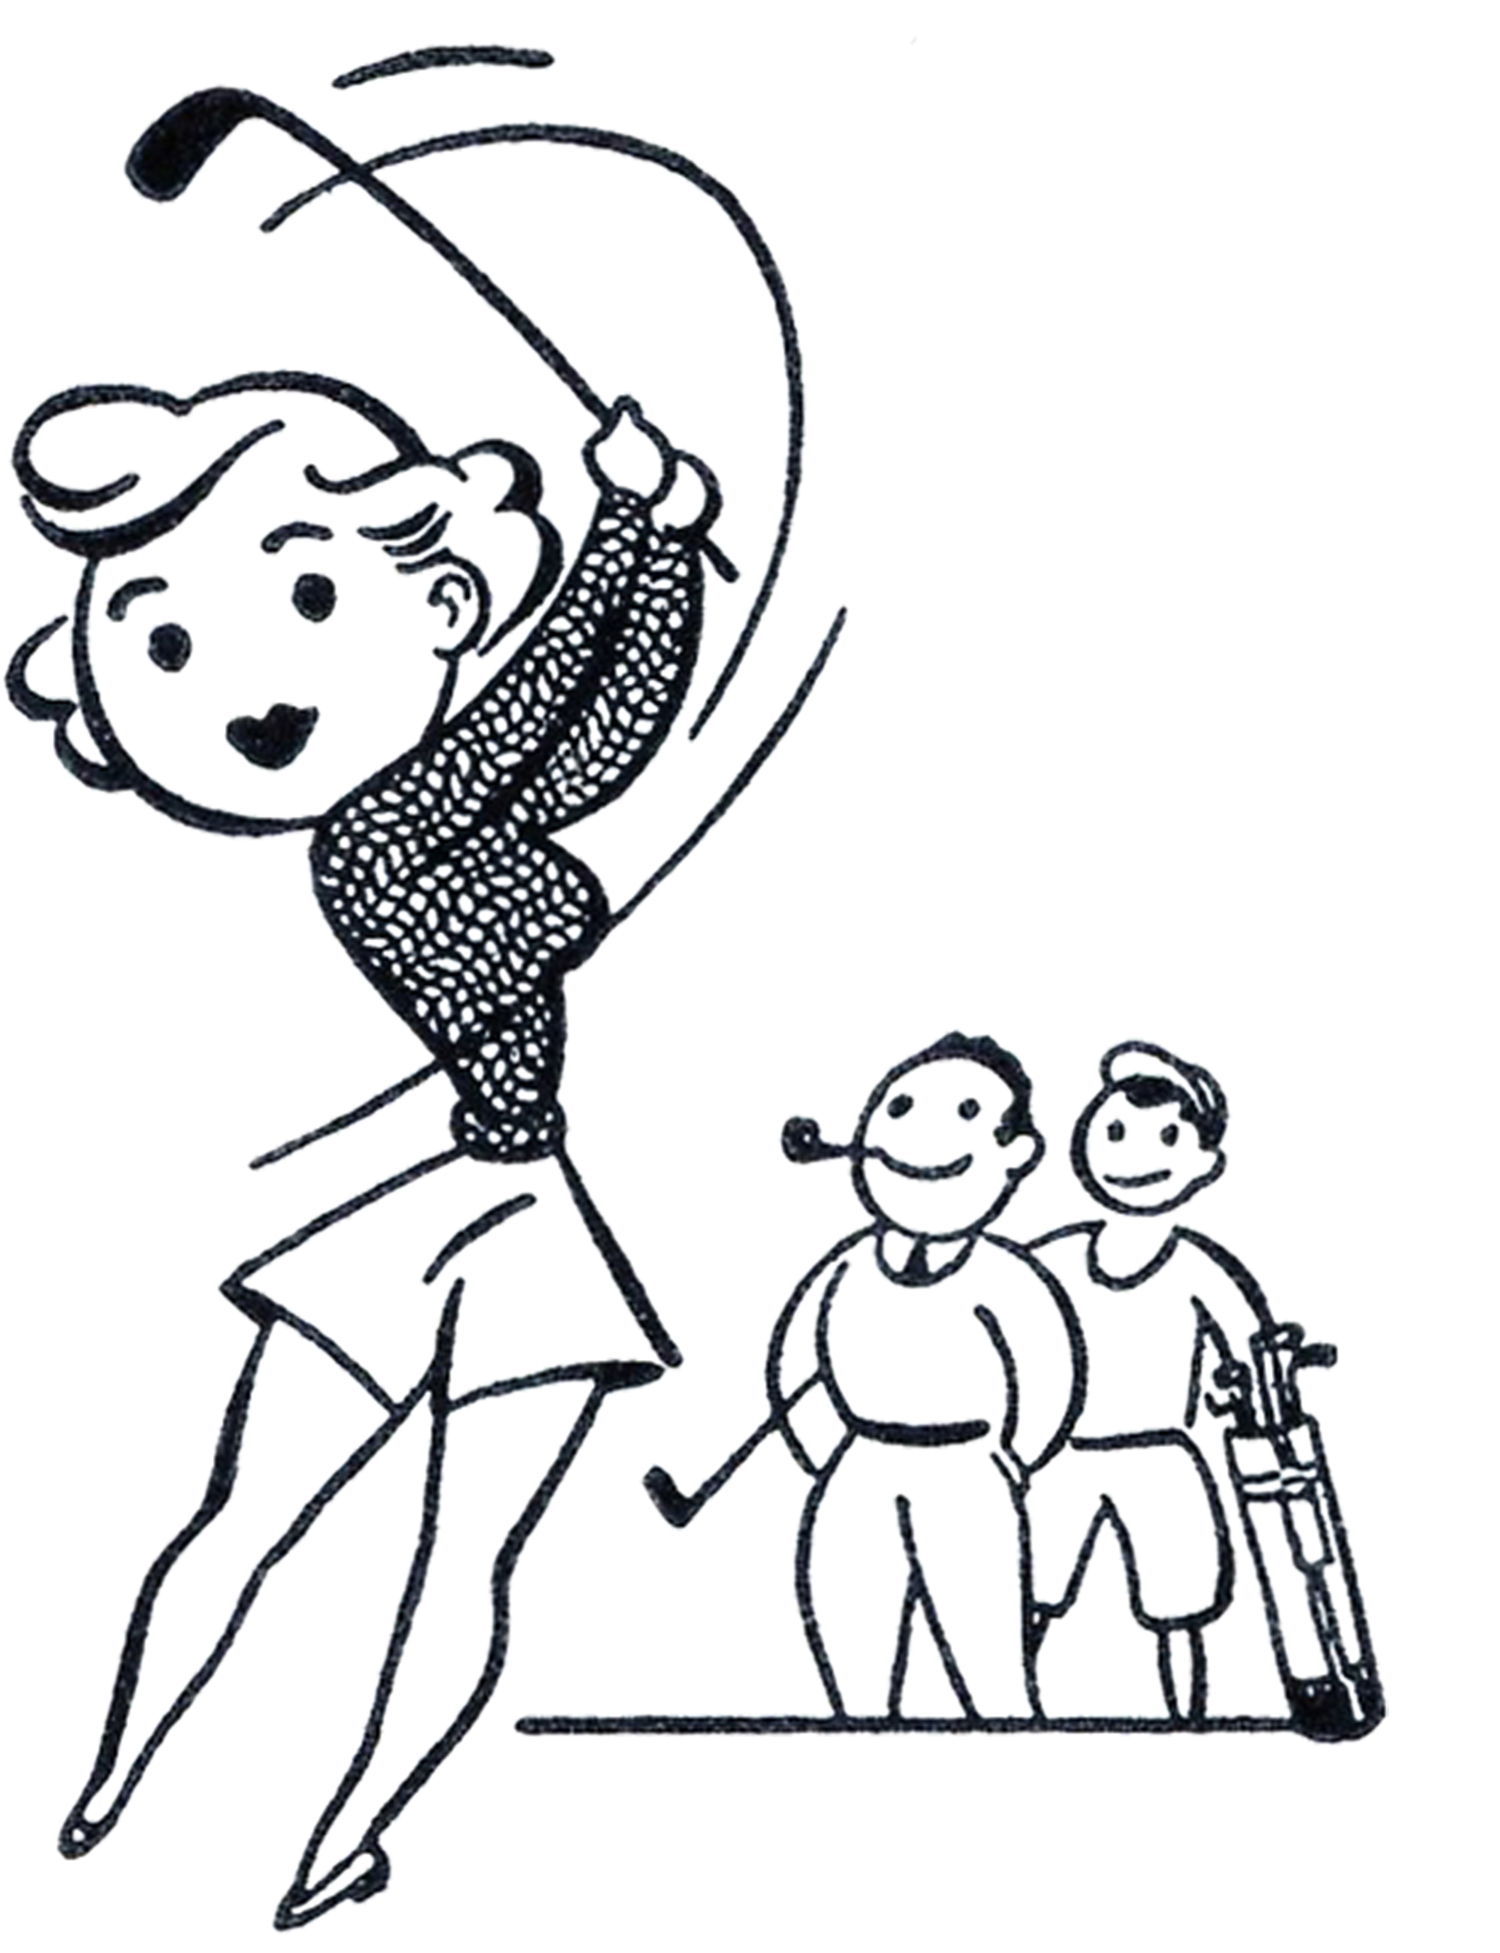 Funny couples golf clipart kid.